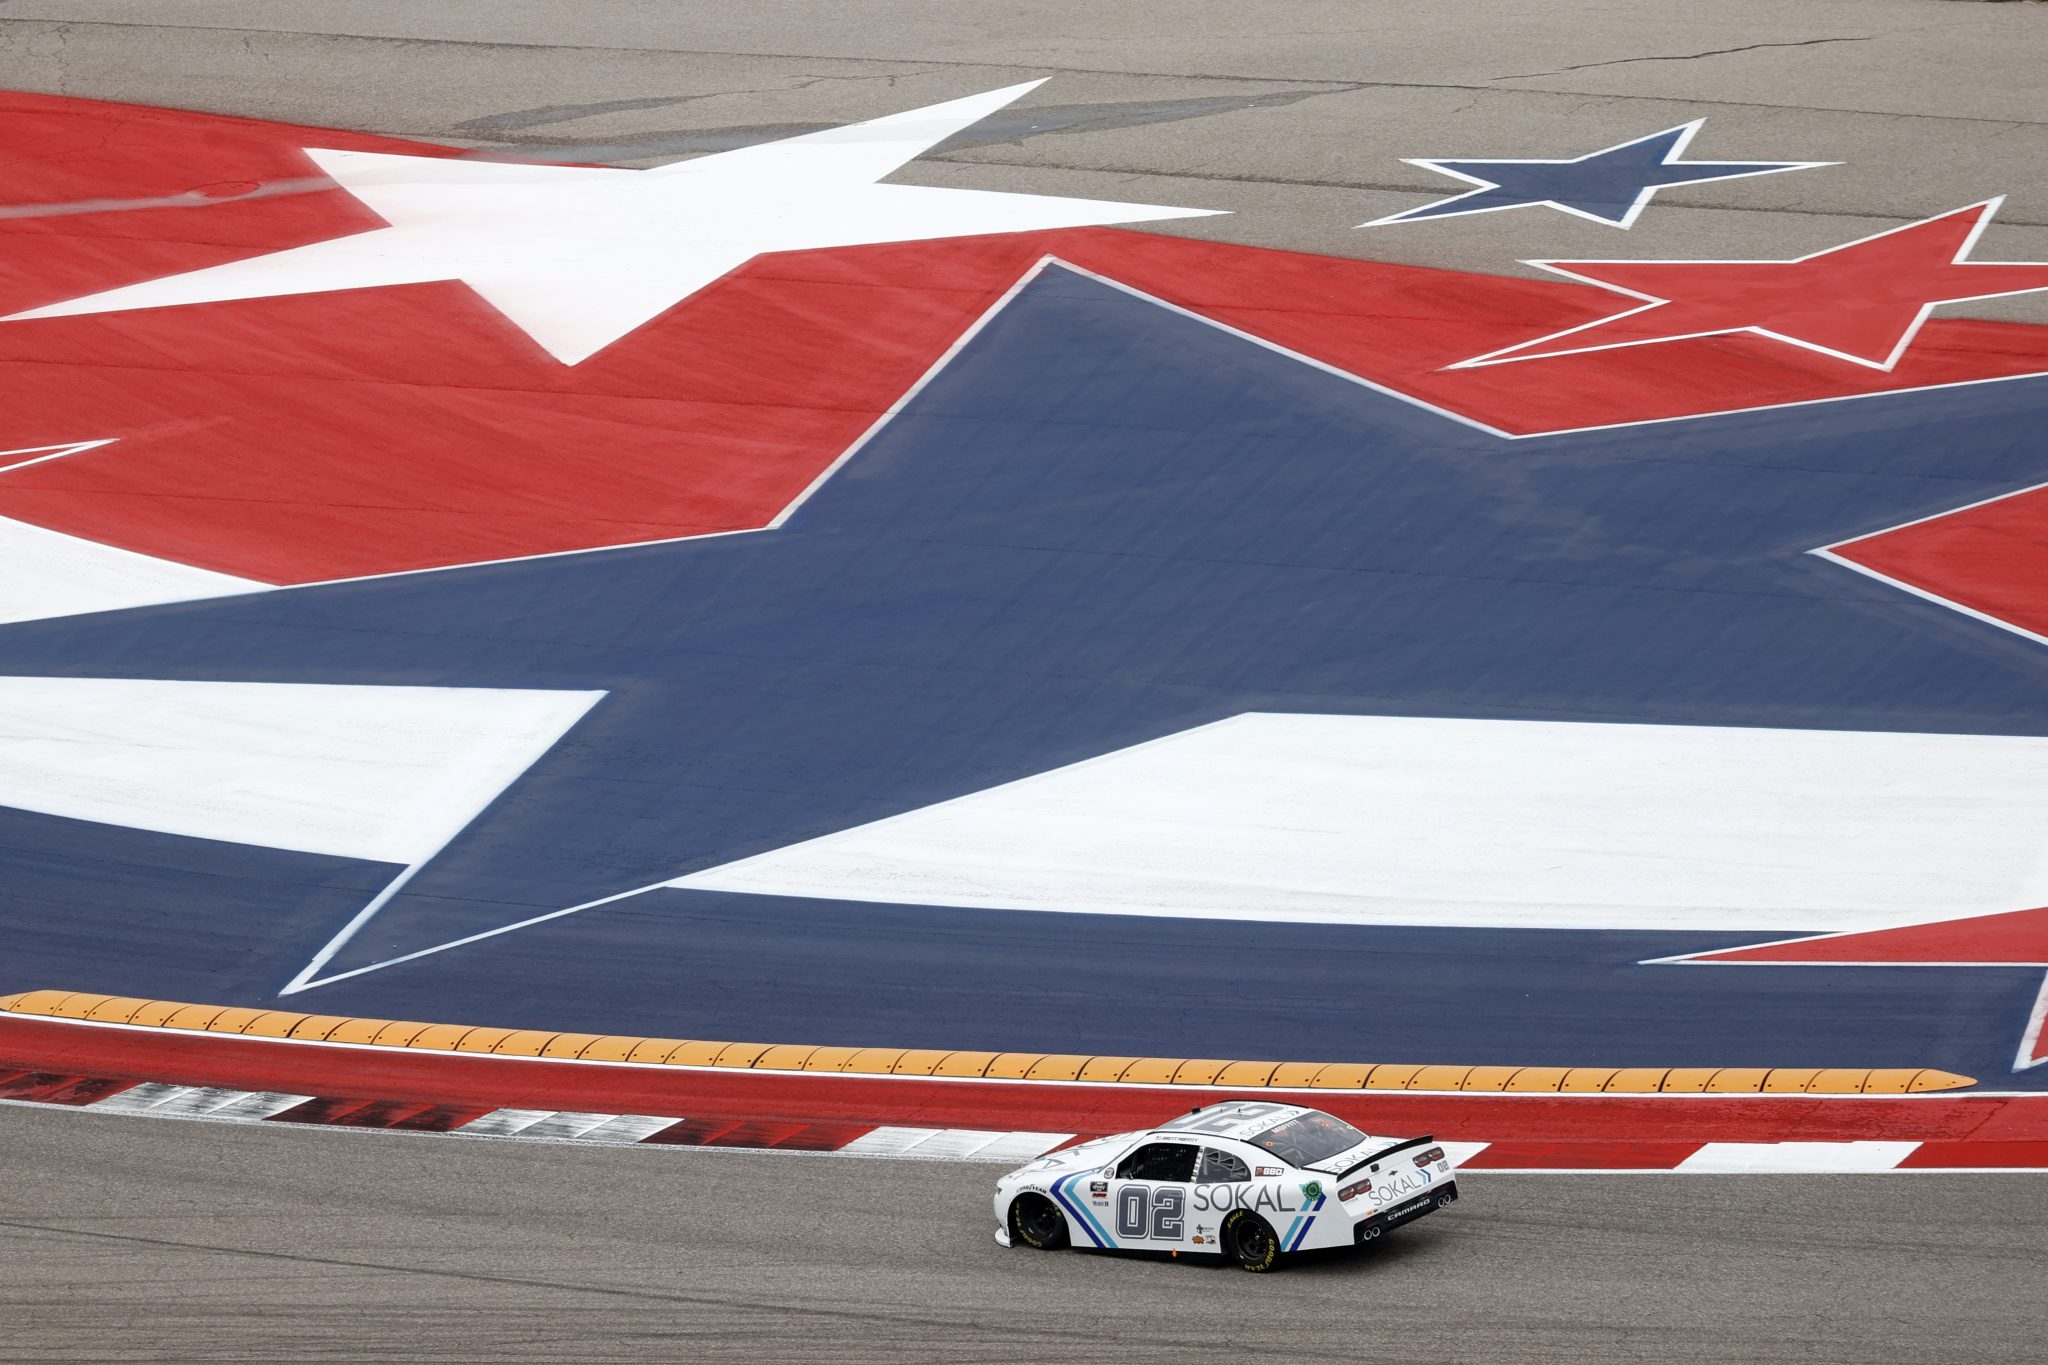 AUSTIN, TEXAS - MAY 22: Brett Moffitt, driver of the #02 SOKAL Chevrolet, drives during the NASCAR Xfinity Series Pit Boss 250 at Circuit of The Americas on May 22, 2021 in Austin, Texas. (Photo by Chris Graythen/Getty Images) | Getty Images